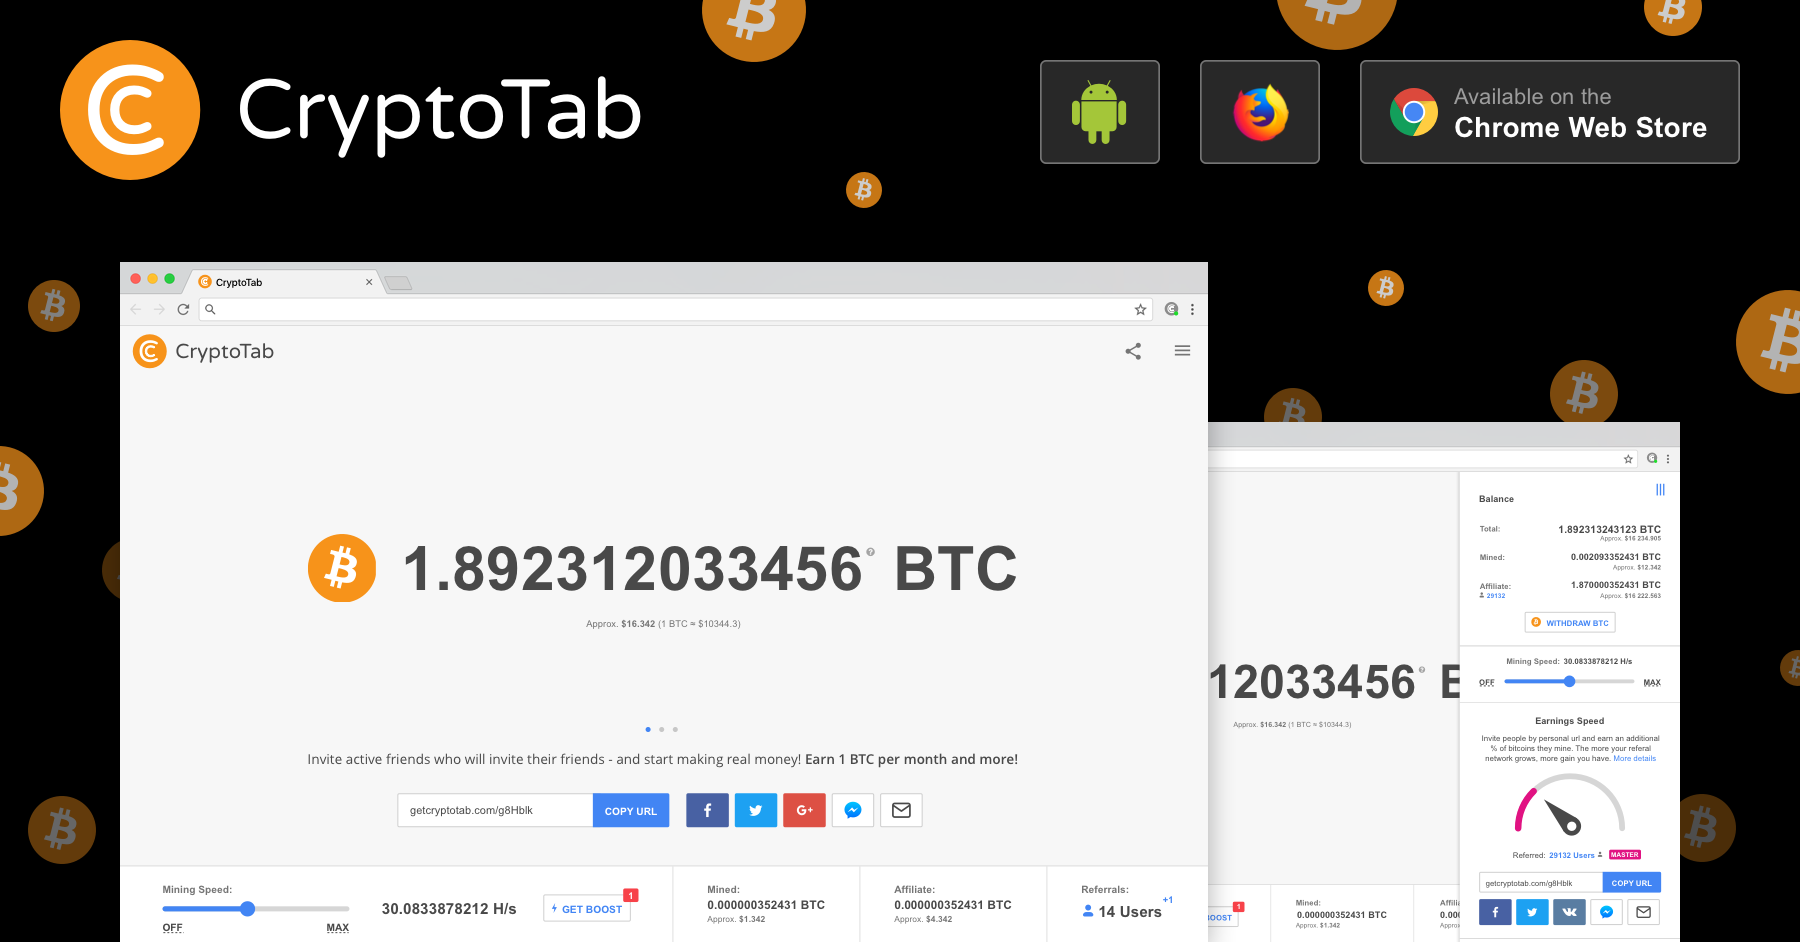 Add CryptoTab to your Chrome and start earning Bitcoins